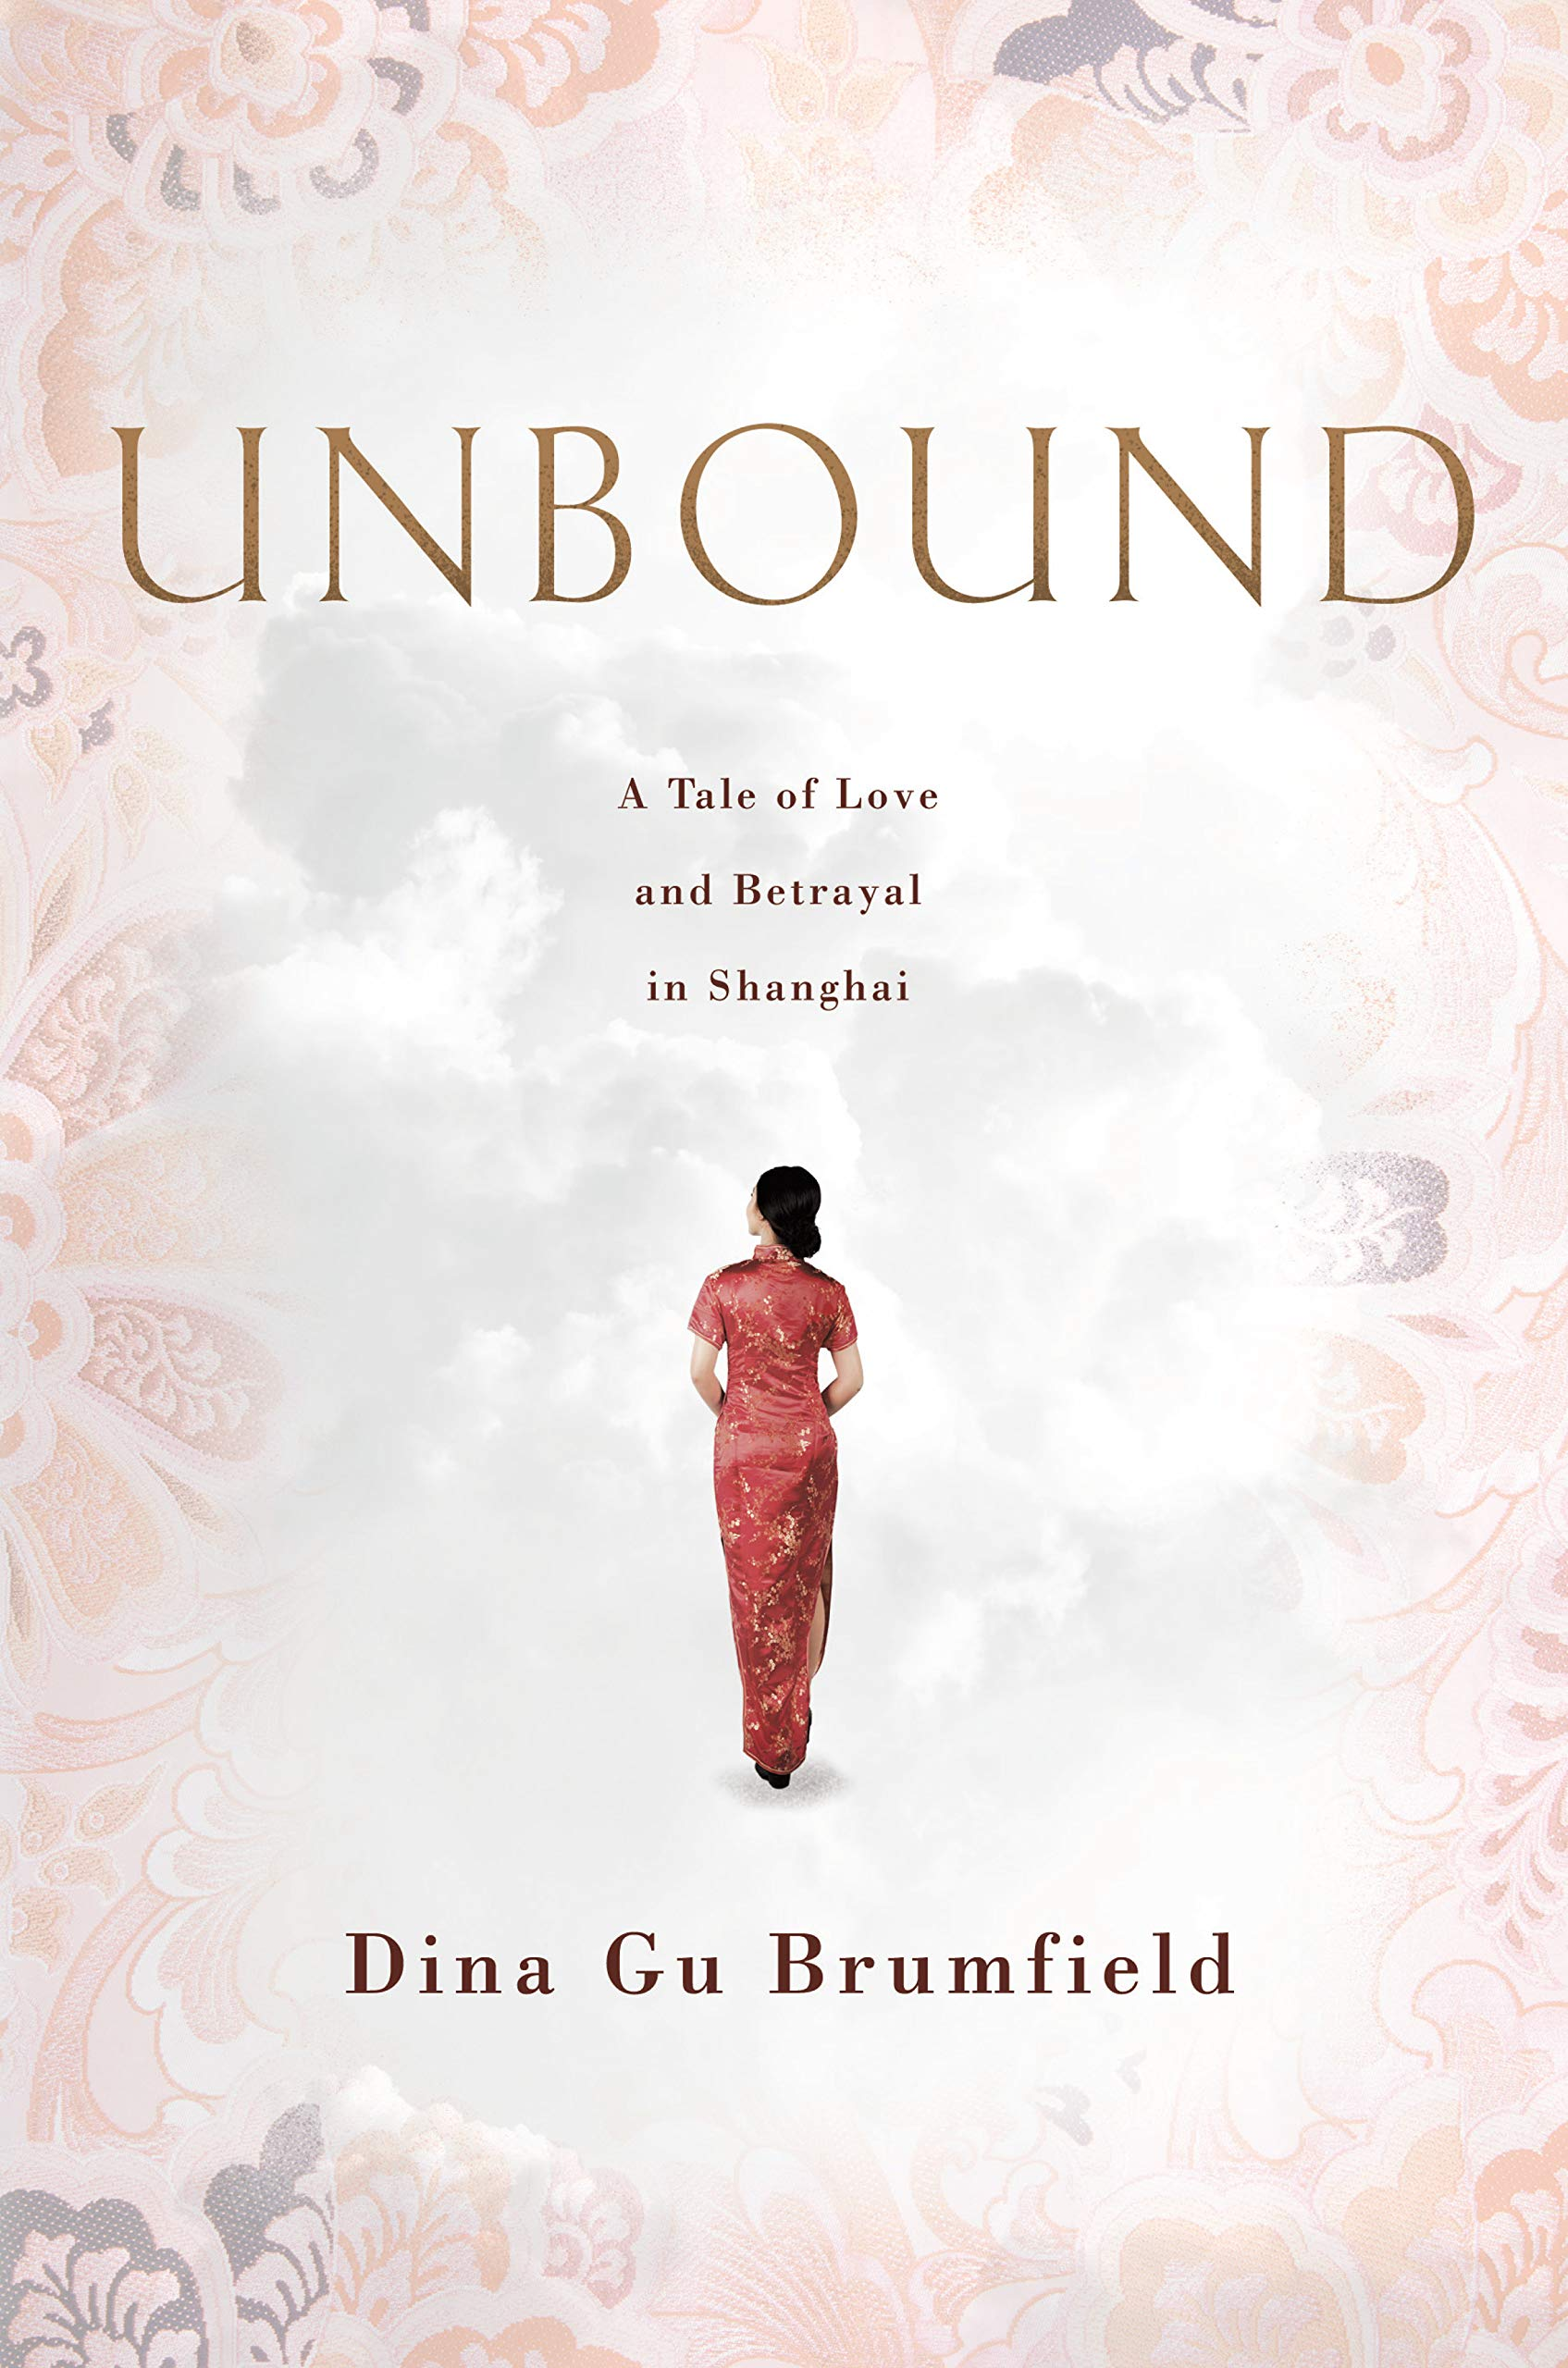 Amazon.com: Unbound: A Tale of Love and Betrayal in Shanghai  (9781626347144): Dina Gu Brumfield: Books